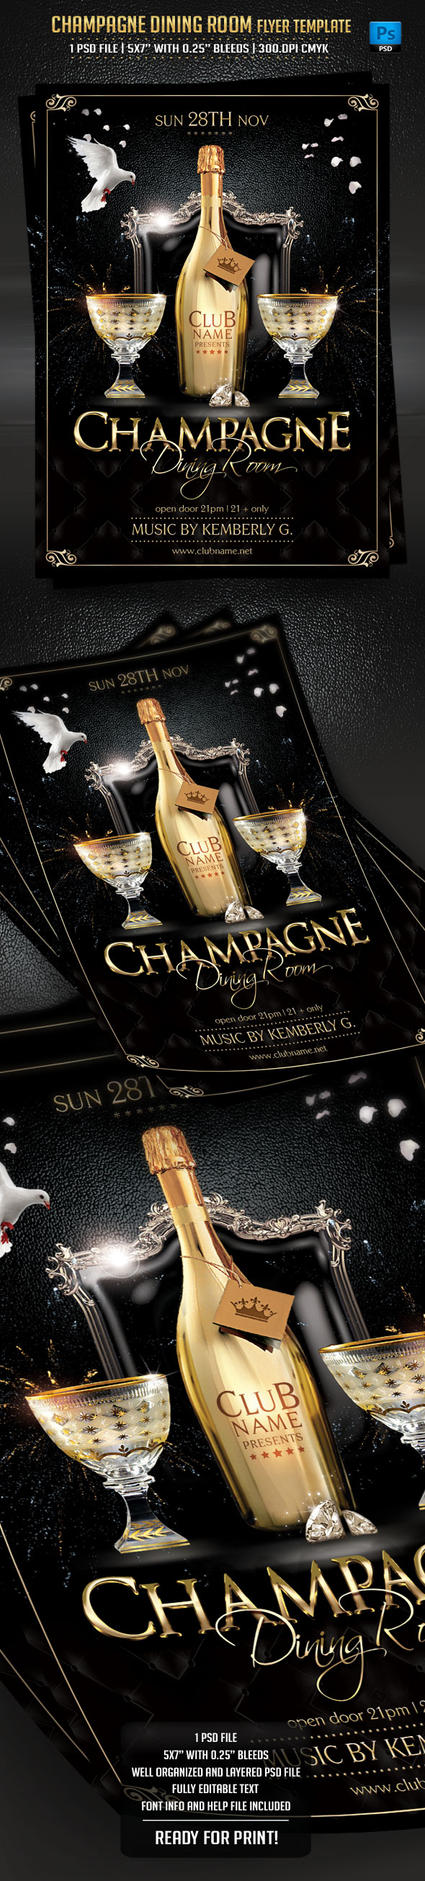 Champagne Dining Room Flyer Template by BriellDesign